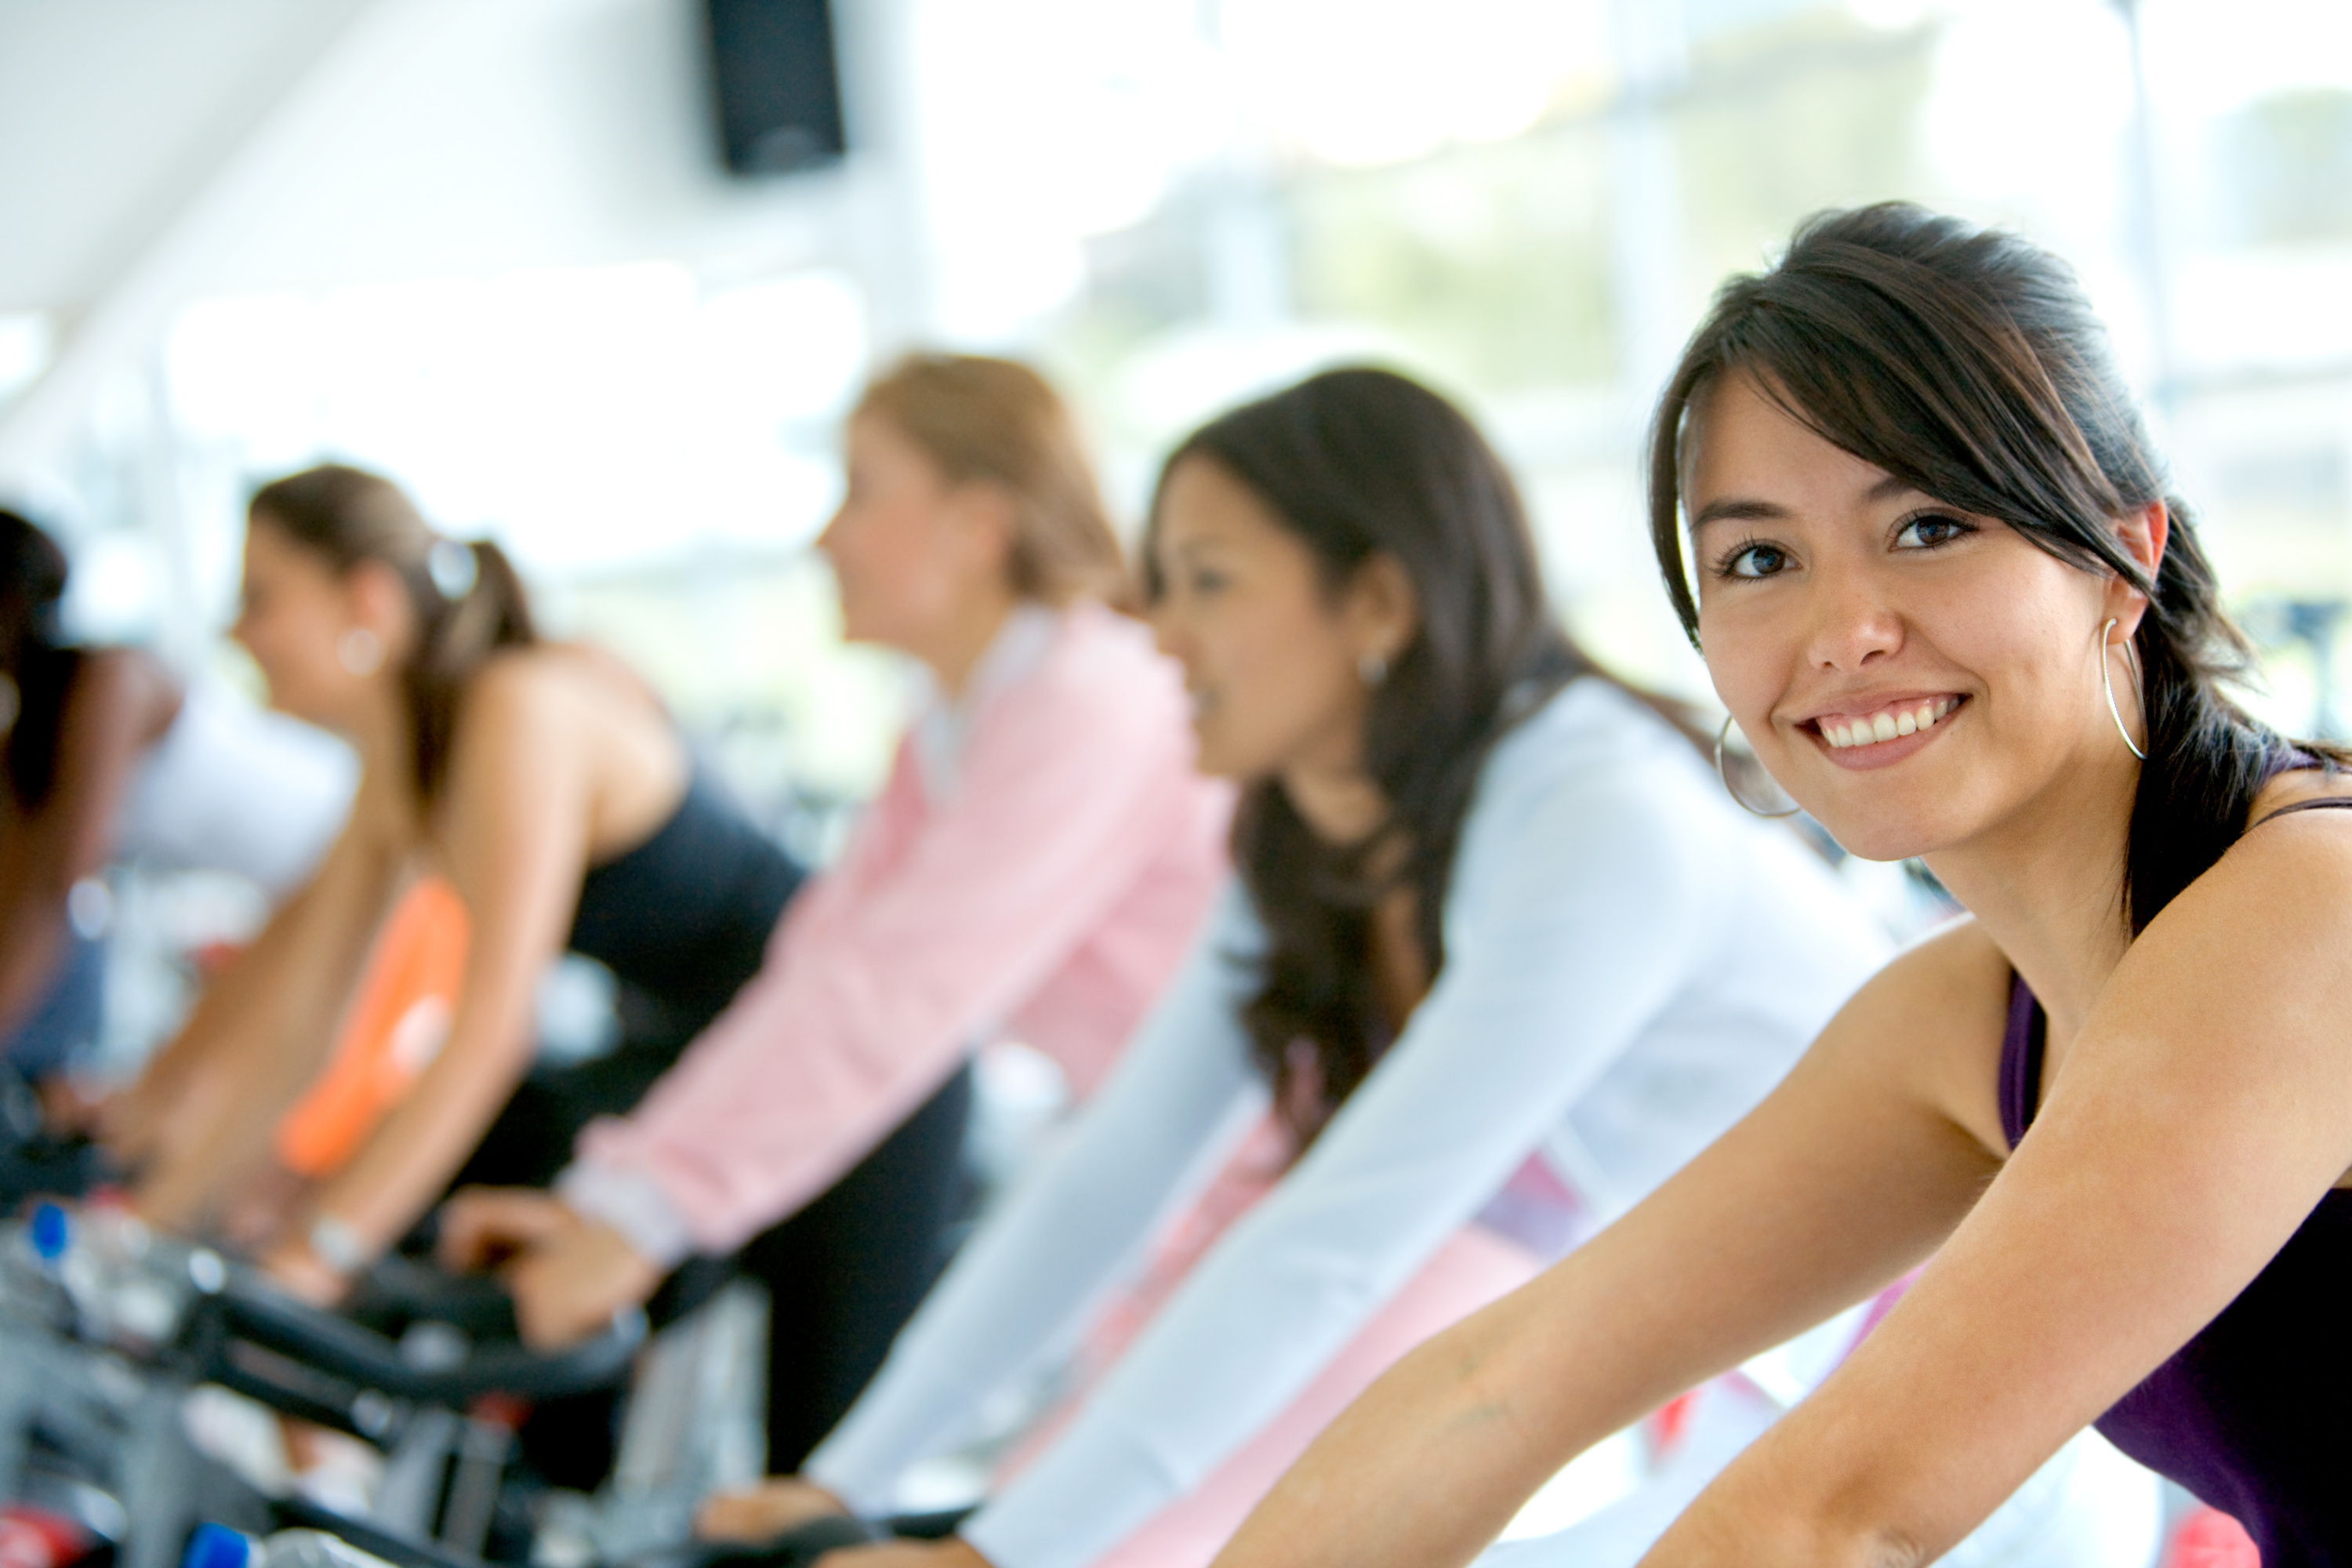 How 3 Mins of exercise can boost your health